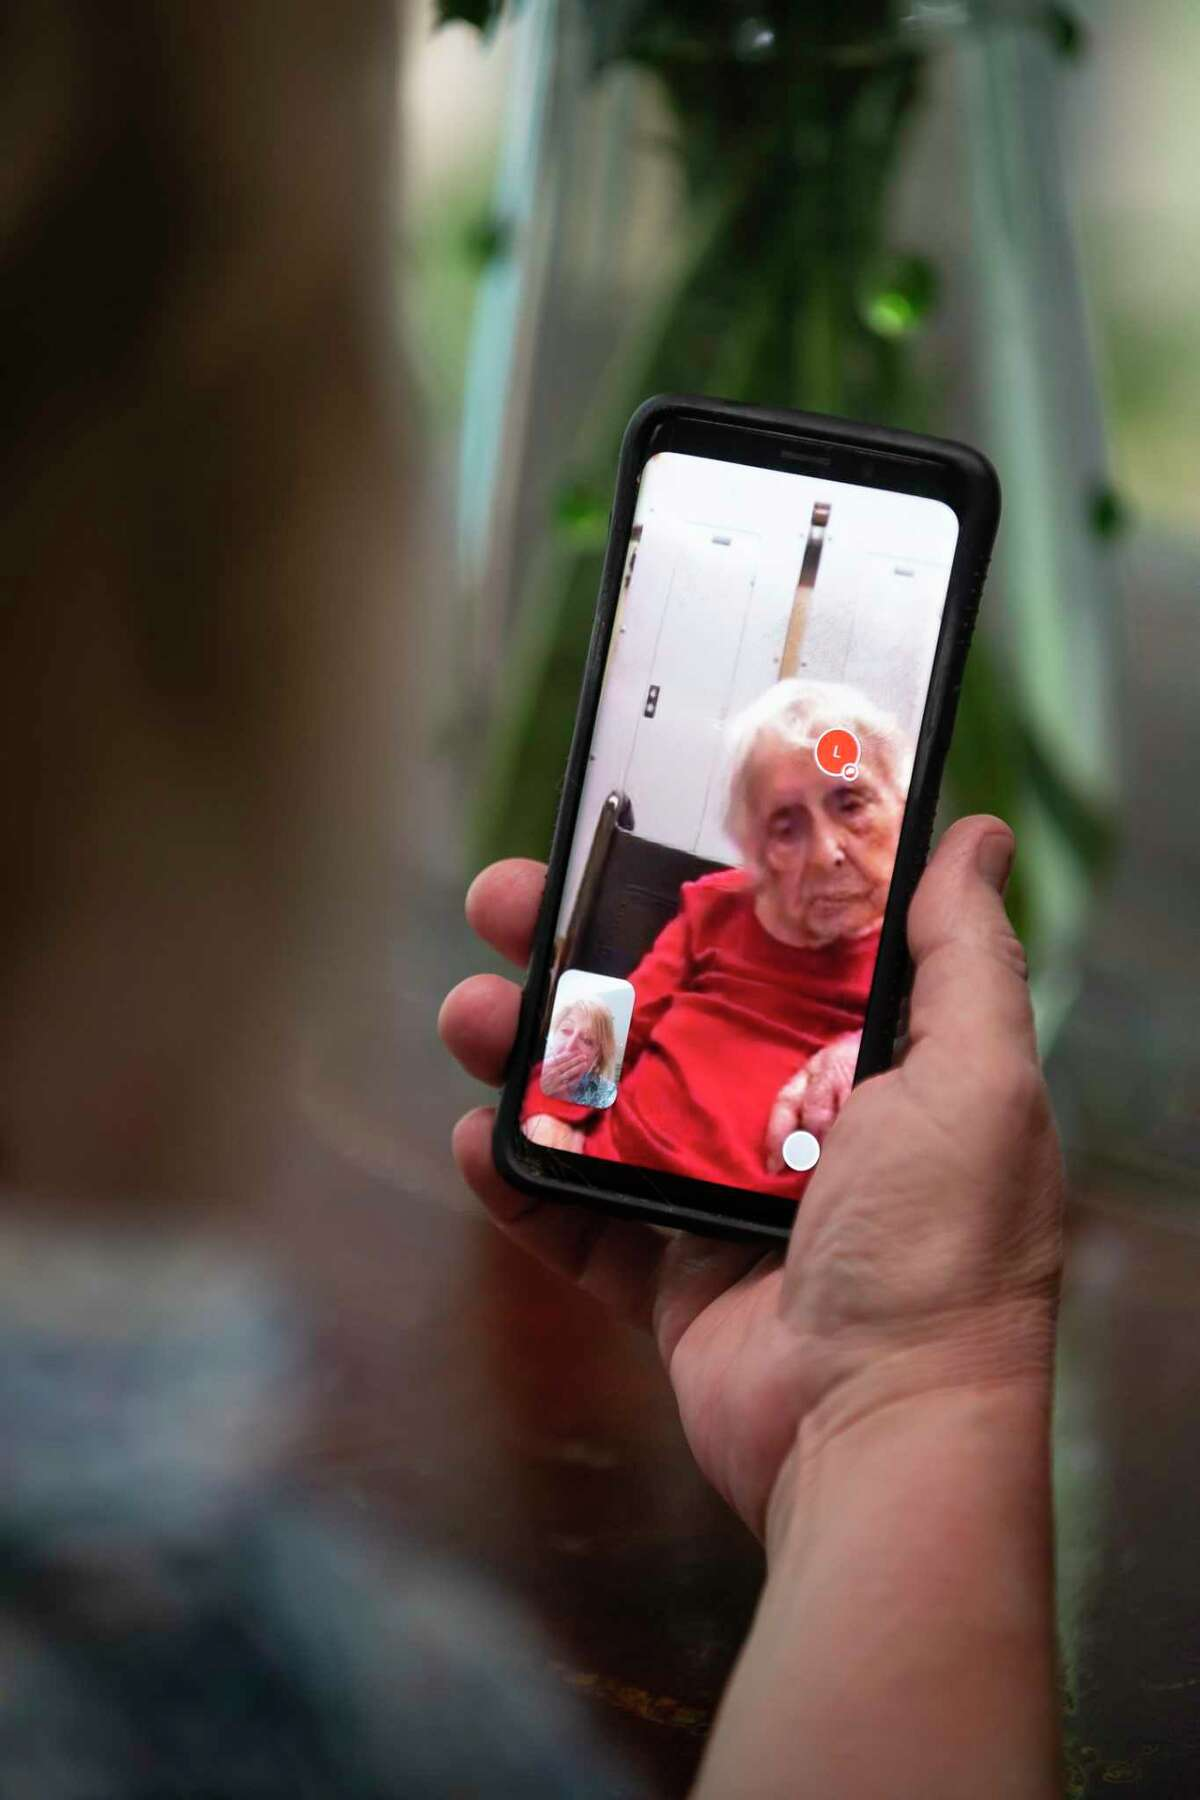 Susan Russell speaks with her mother on a video call Friday in Houston. Russell has been trying to find ways to stay connected with her mom since coronavirus precautions started preventing her from visiting her in person at the Houston memory care facility where she lives.